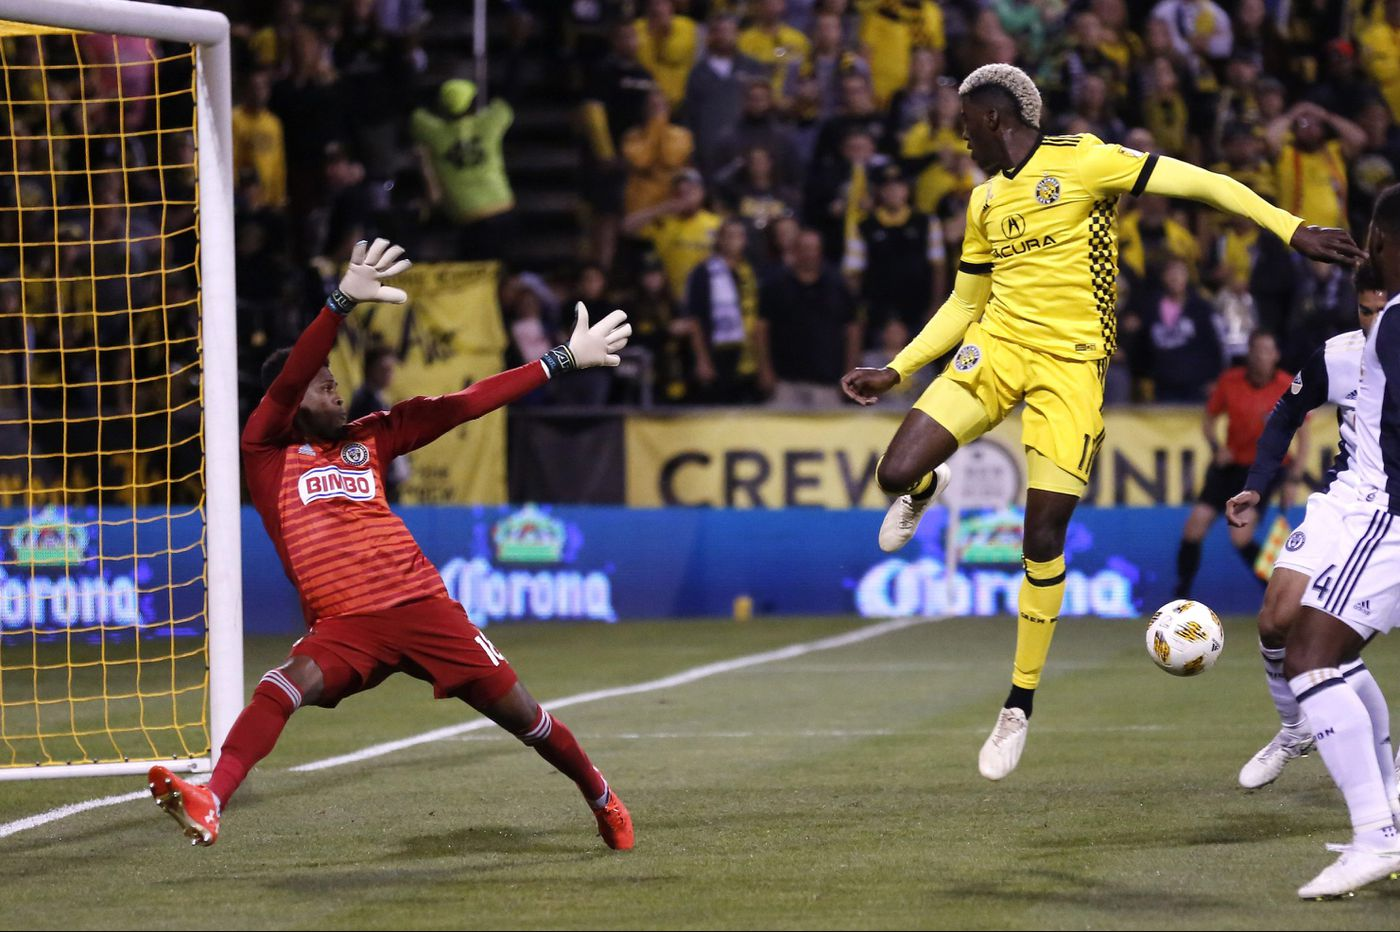 Union's scoreless tie in Columbus marred by controversial overturned goal